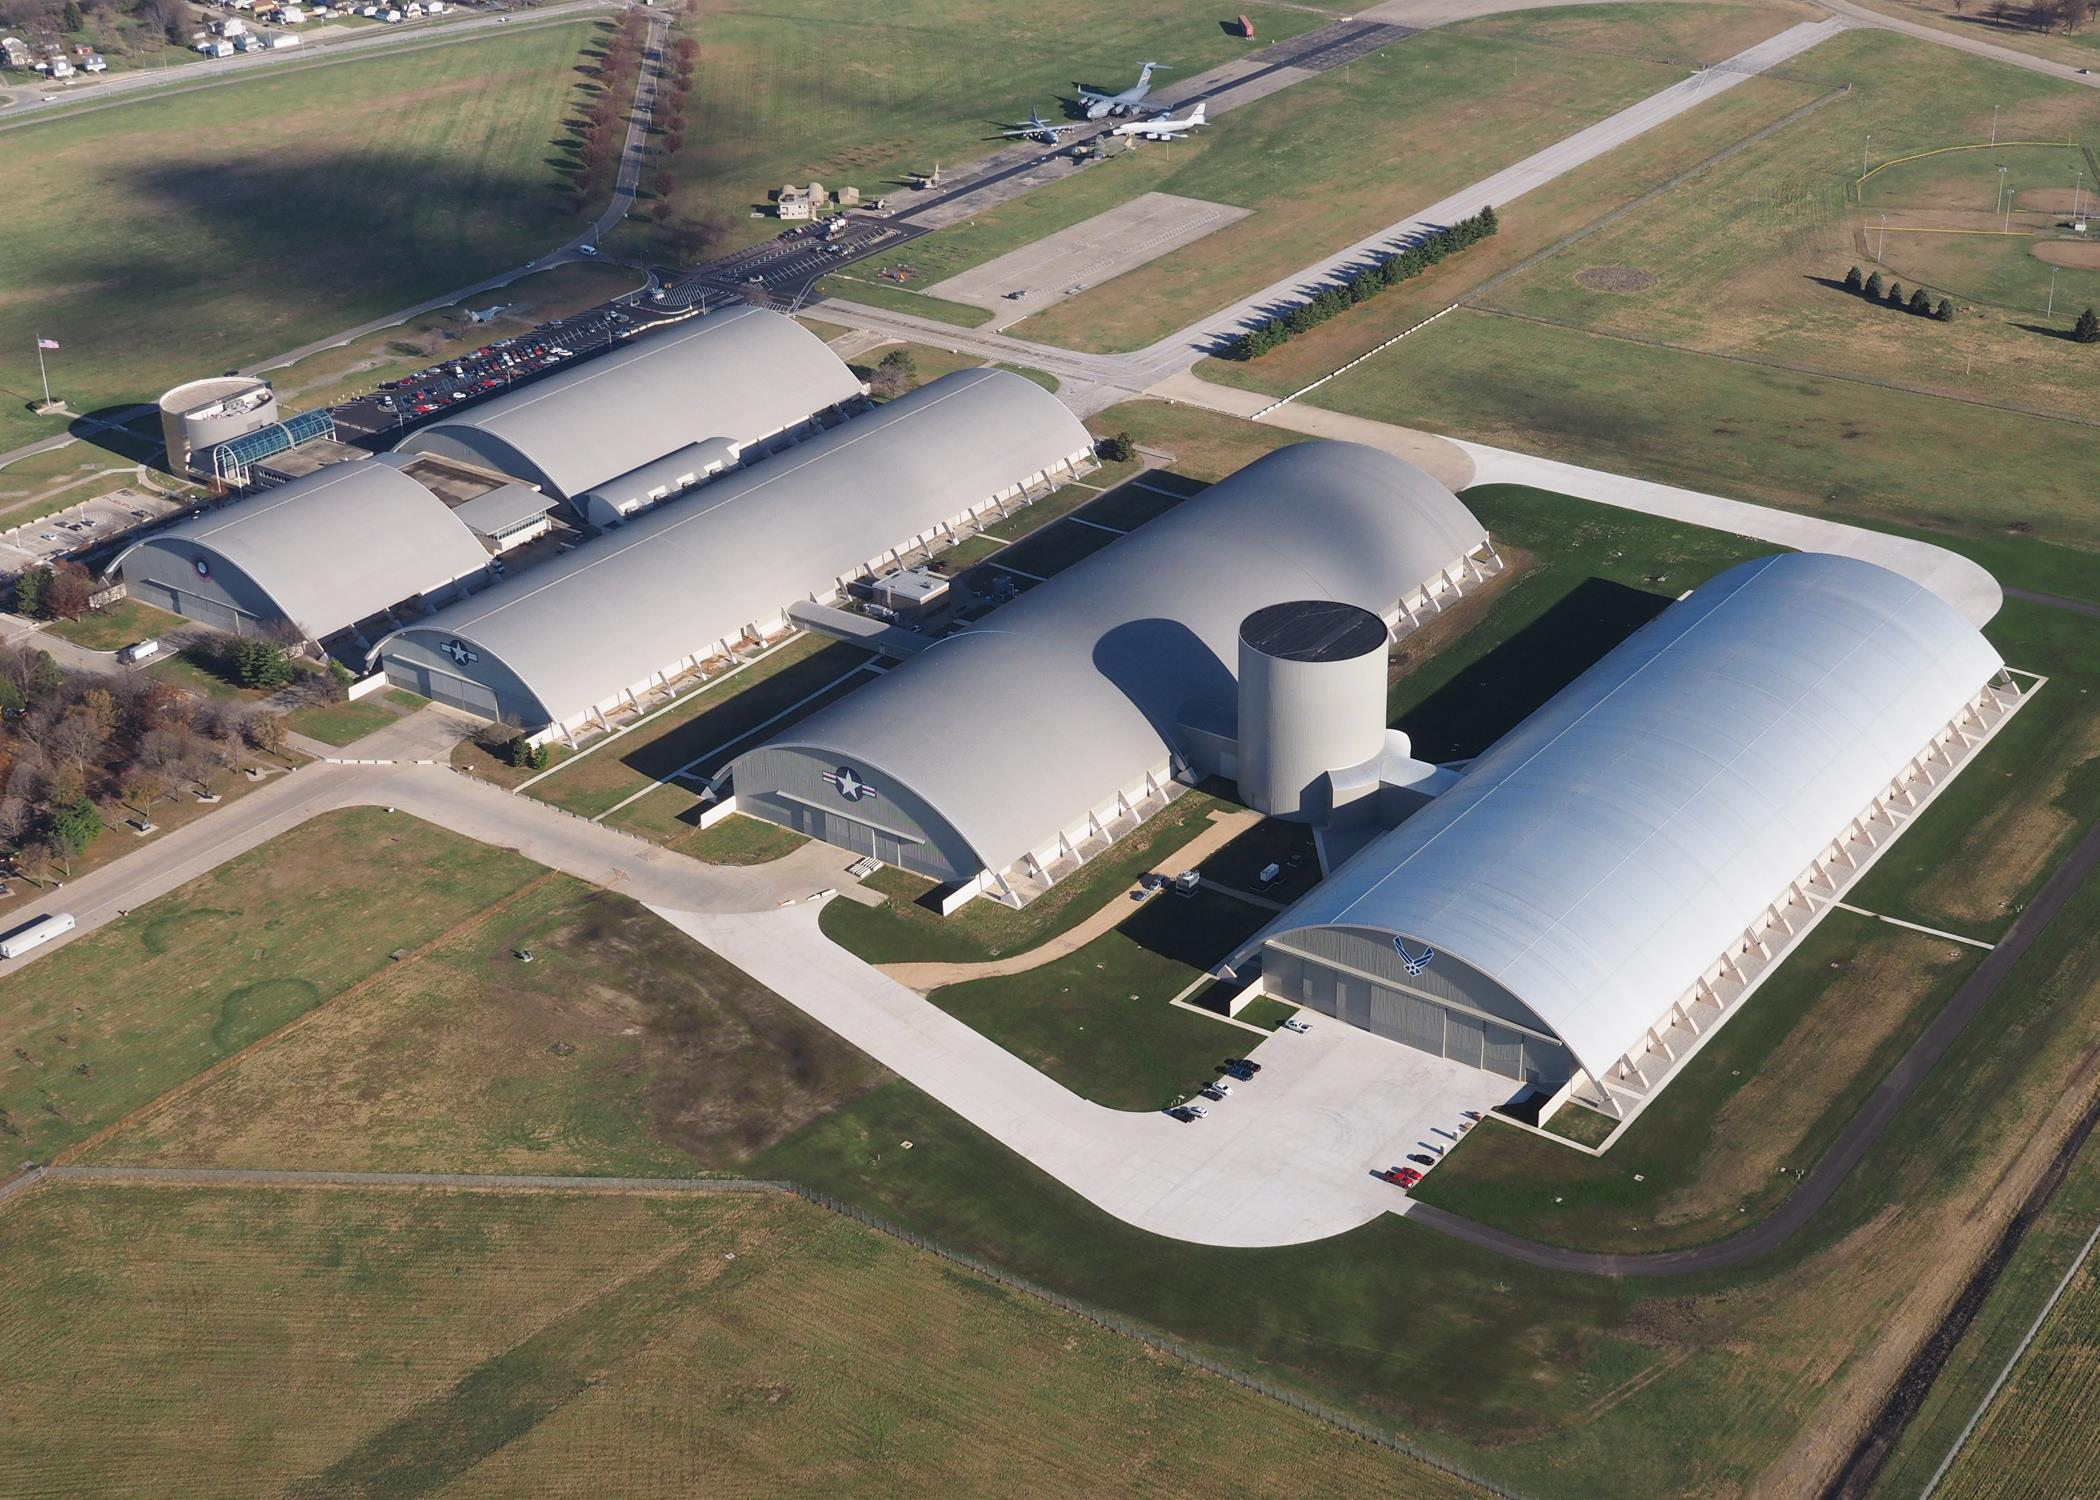 National Museum of the U.S. Air Force fourth building to open June 8